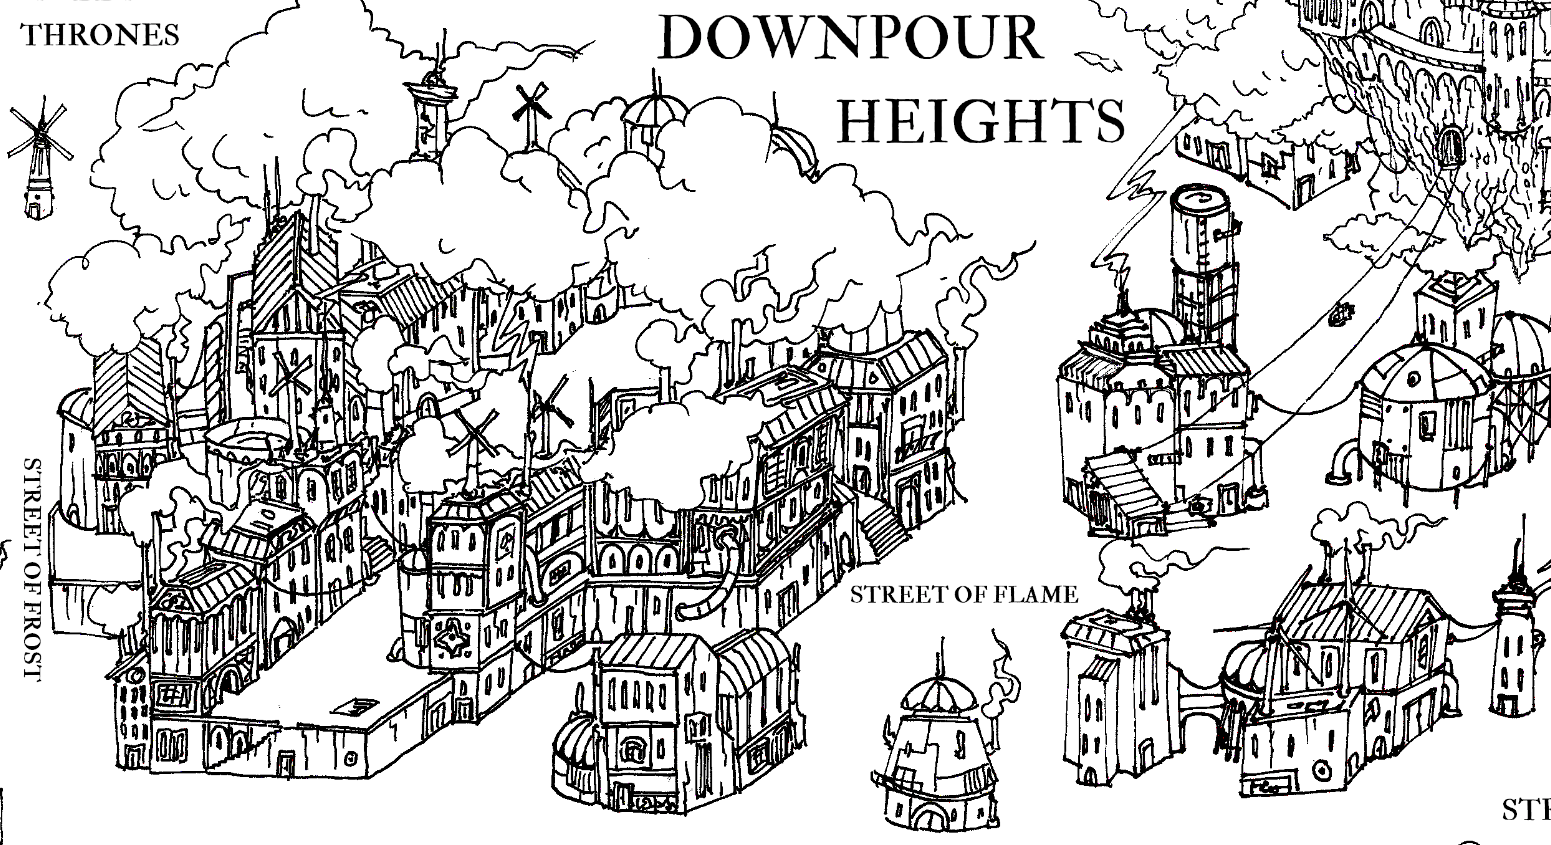 Downpour Heights